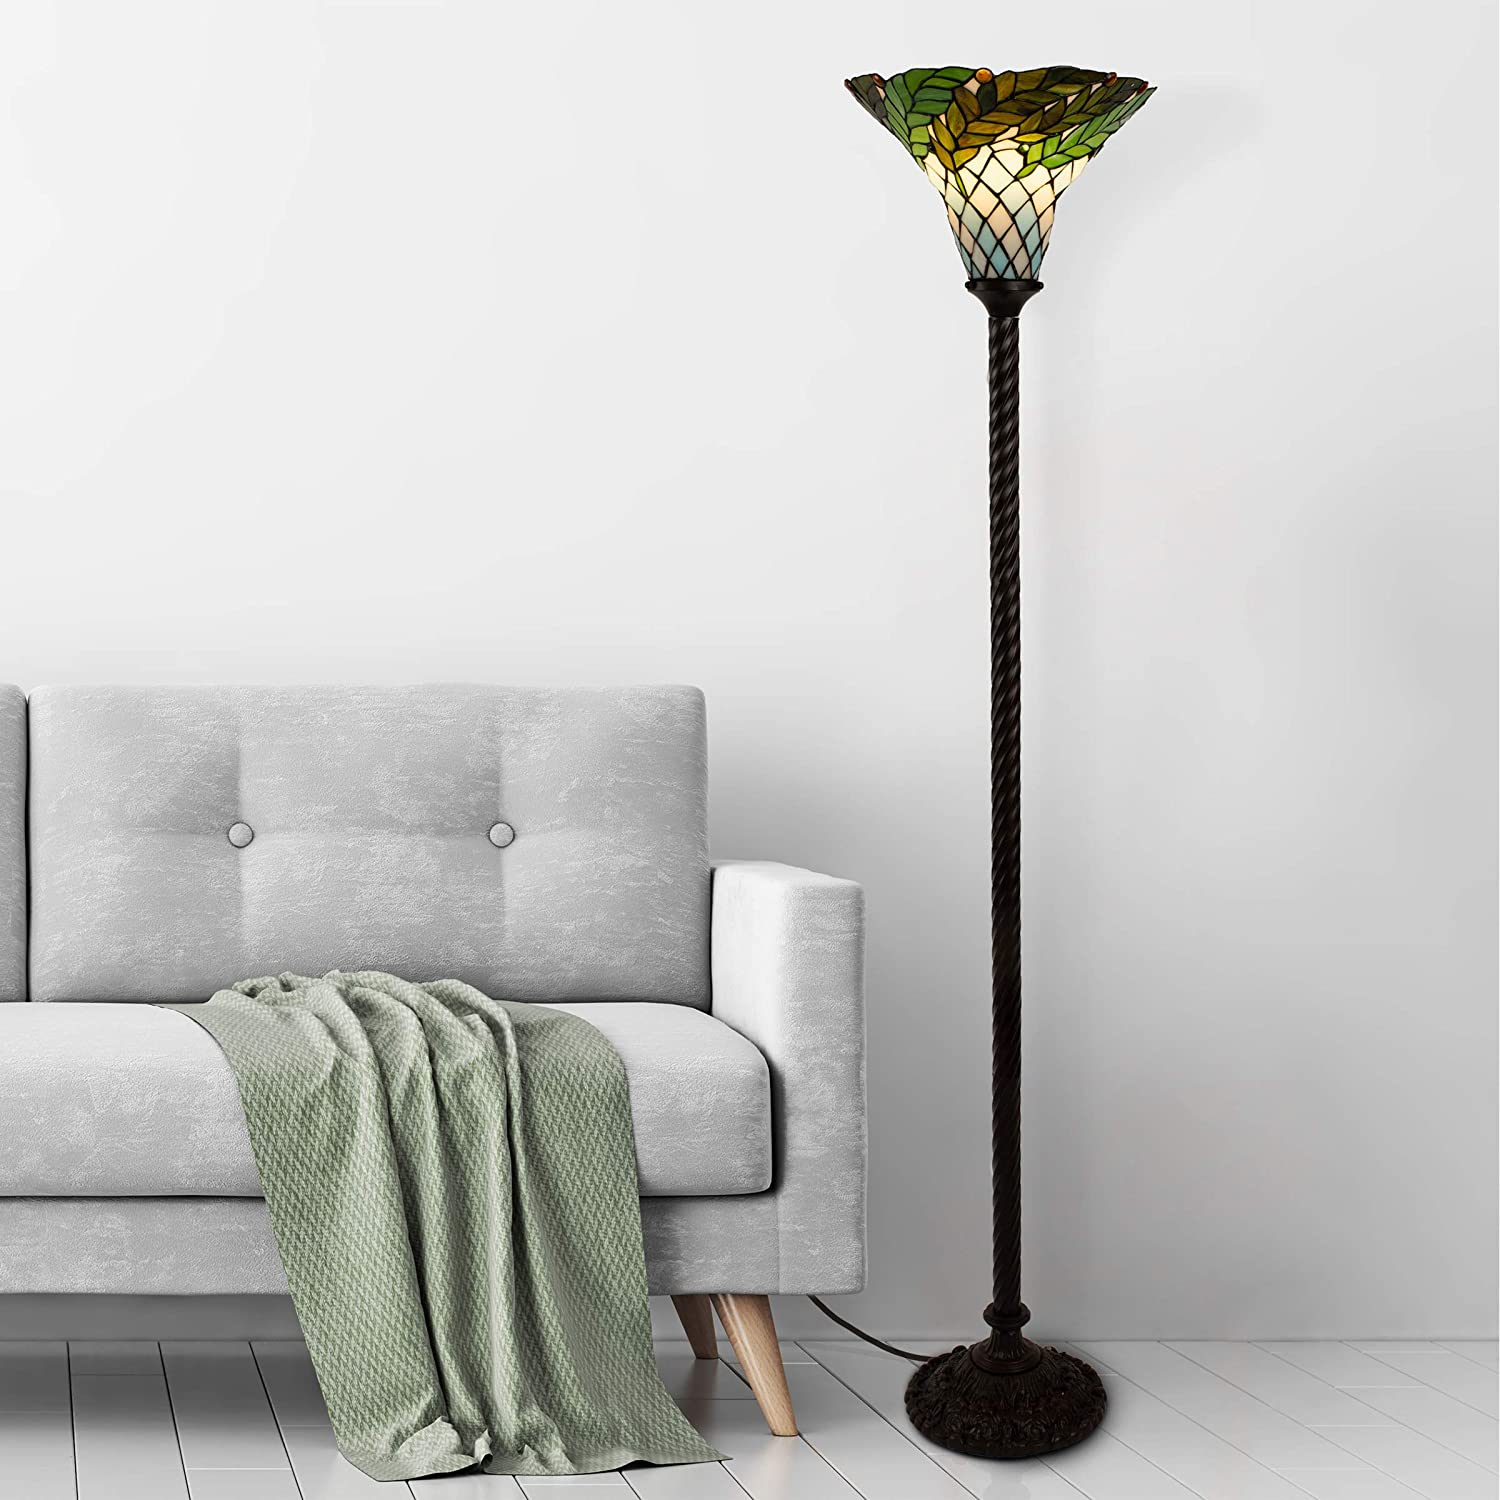 Lavish Home 72-Tiff-8 Tiffany Style Floor Lamp – Leaf Foliage Art Glass Torchiere Lighting LED Bulb Included-Vintage Look Handcrafted Accent Decor, Multicolor